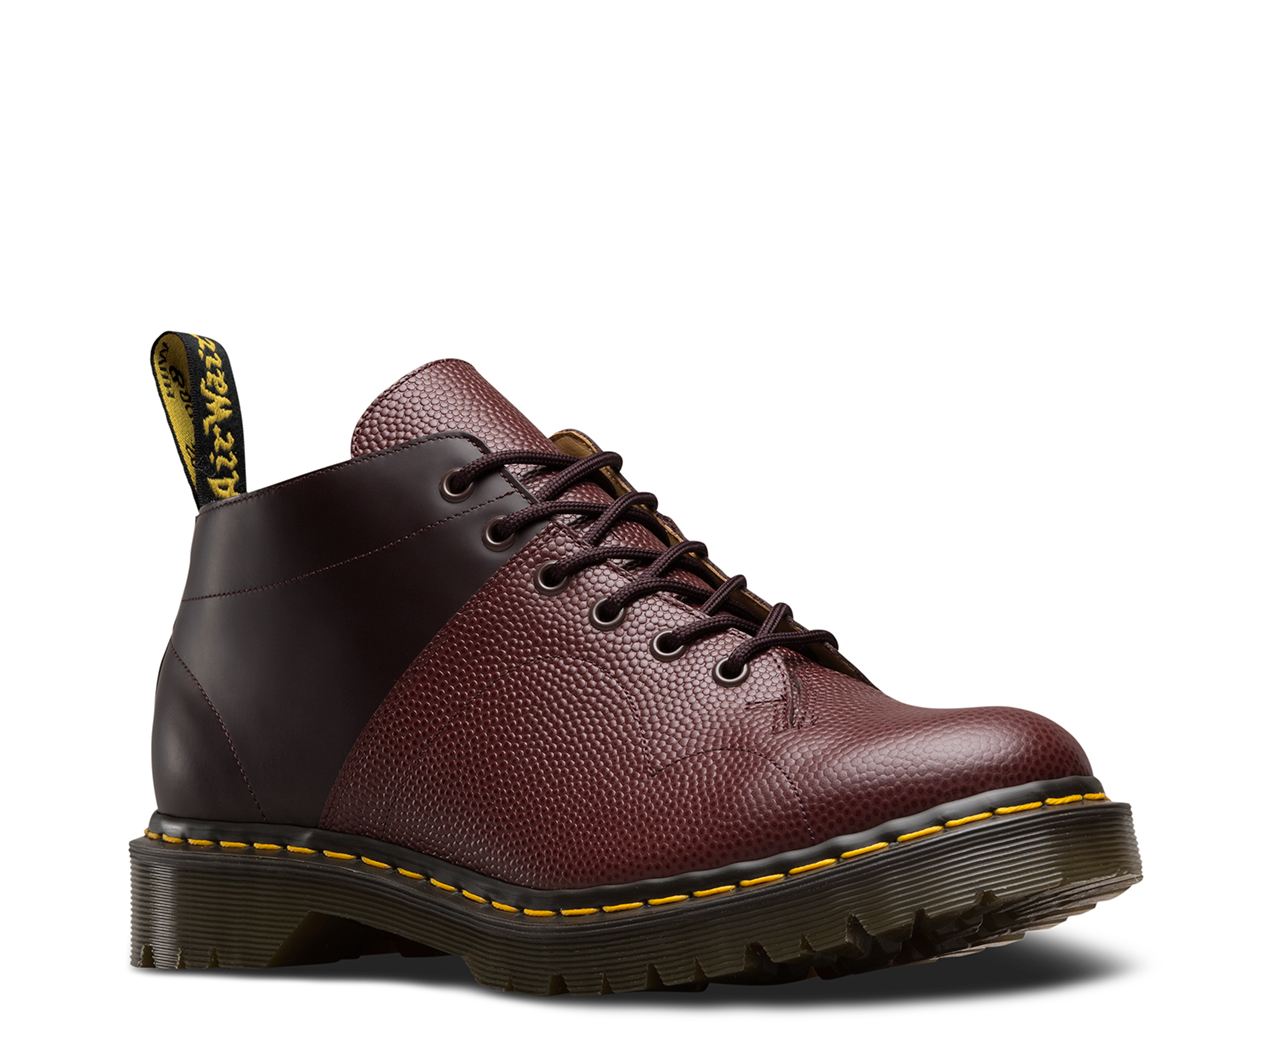 167ba49095992 Engineered Garments Pebble Church   Collaborations   The Official FR Dr  Martens Store